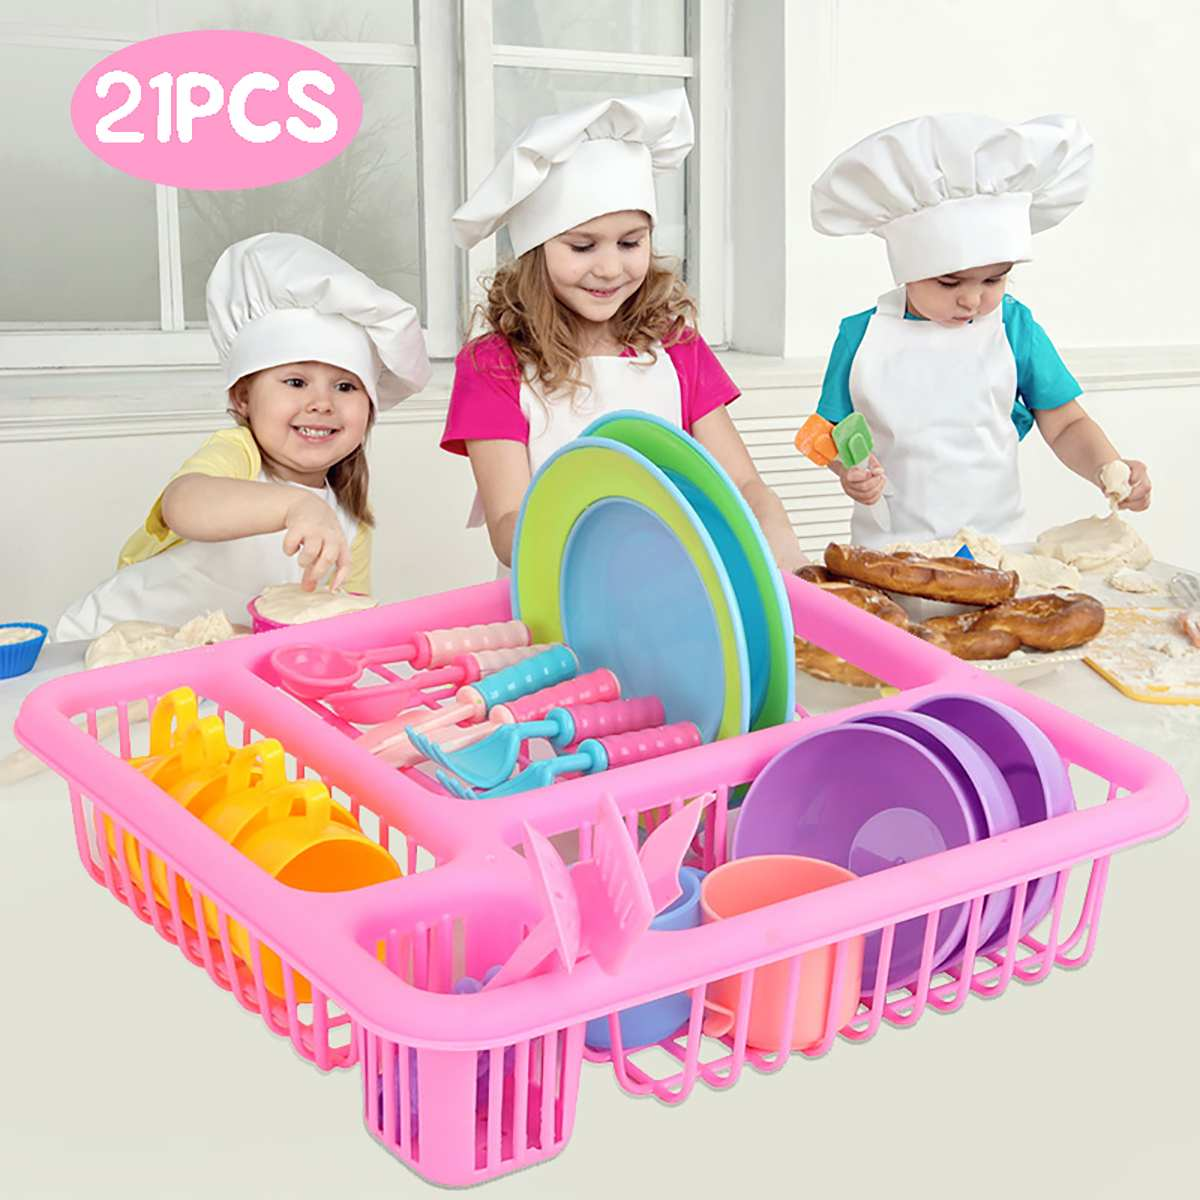 Kids Pretend Play Dishes Kitchen Playset Wash And Dry Tableware Dish Rack Toy With Drainer